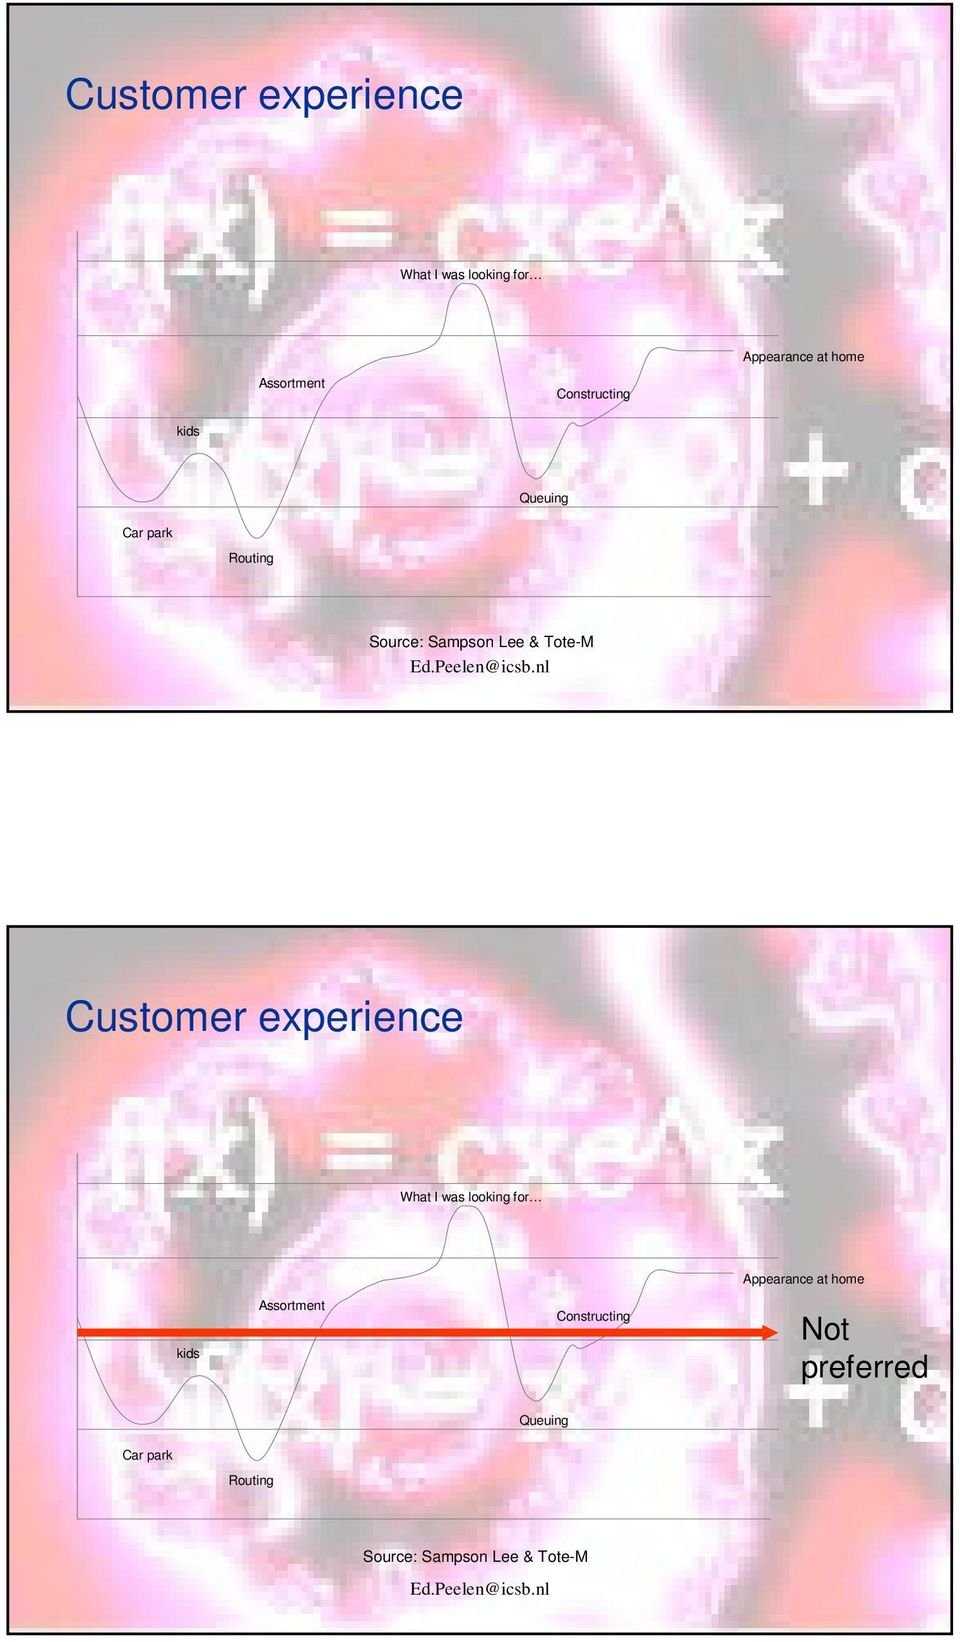 Customer experience What I was looking for Appearance at home kids